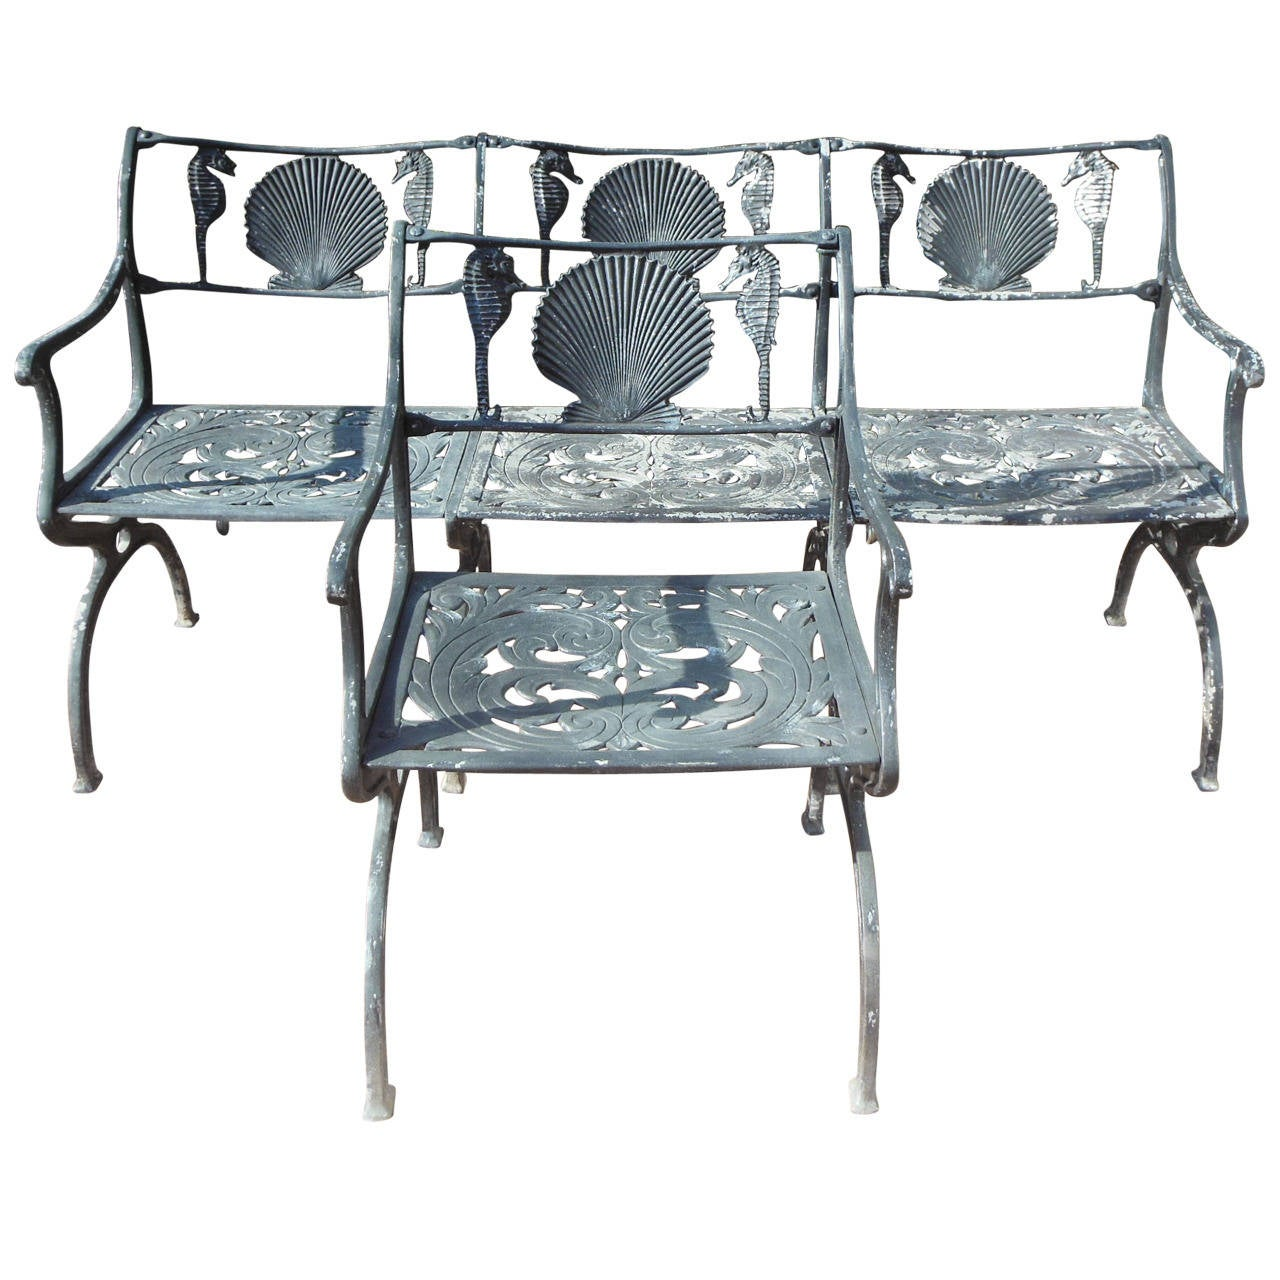 Patio Set By Molla For The Garden Or Sea Shore With Shells And Horse 1